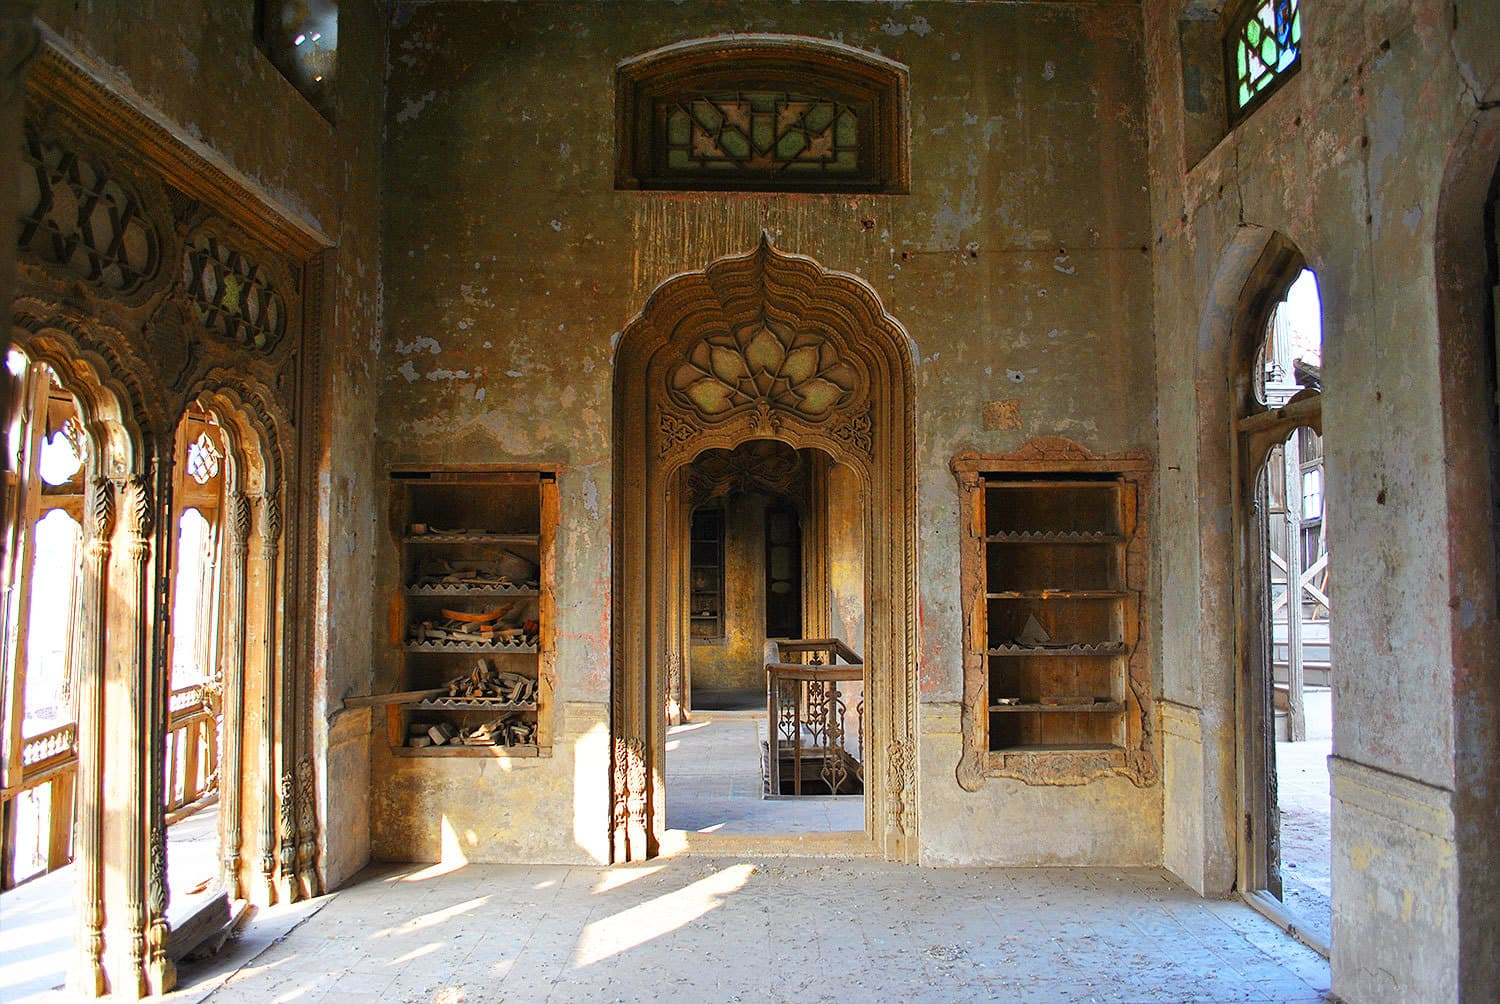 After the tragic end of Umar Hayat family, the palace was ravaged by marauders, looters and smugglers of antique furniture.